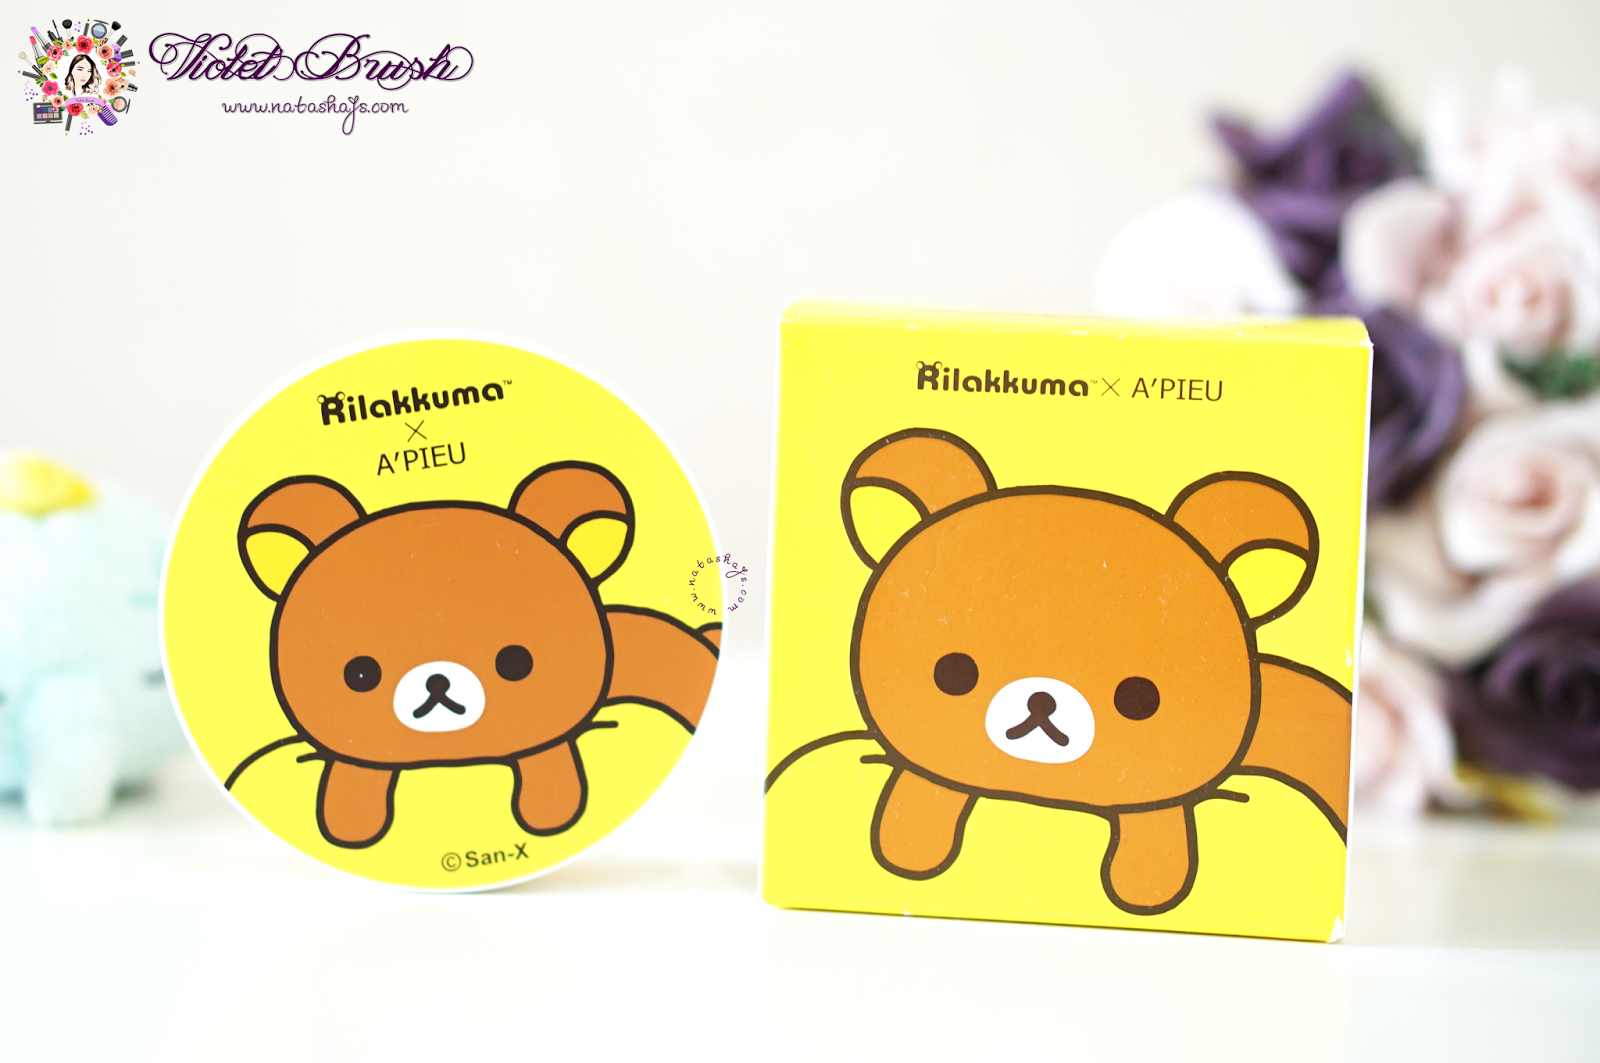 a'pieu-rilakkuma-air-fit-tension-pact-vs-air-fit-cushion-xp-review